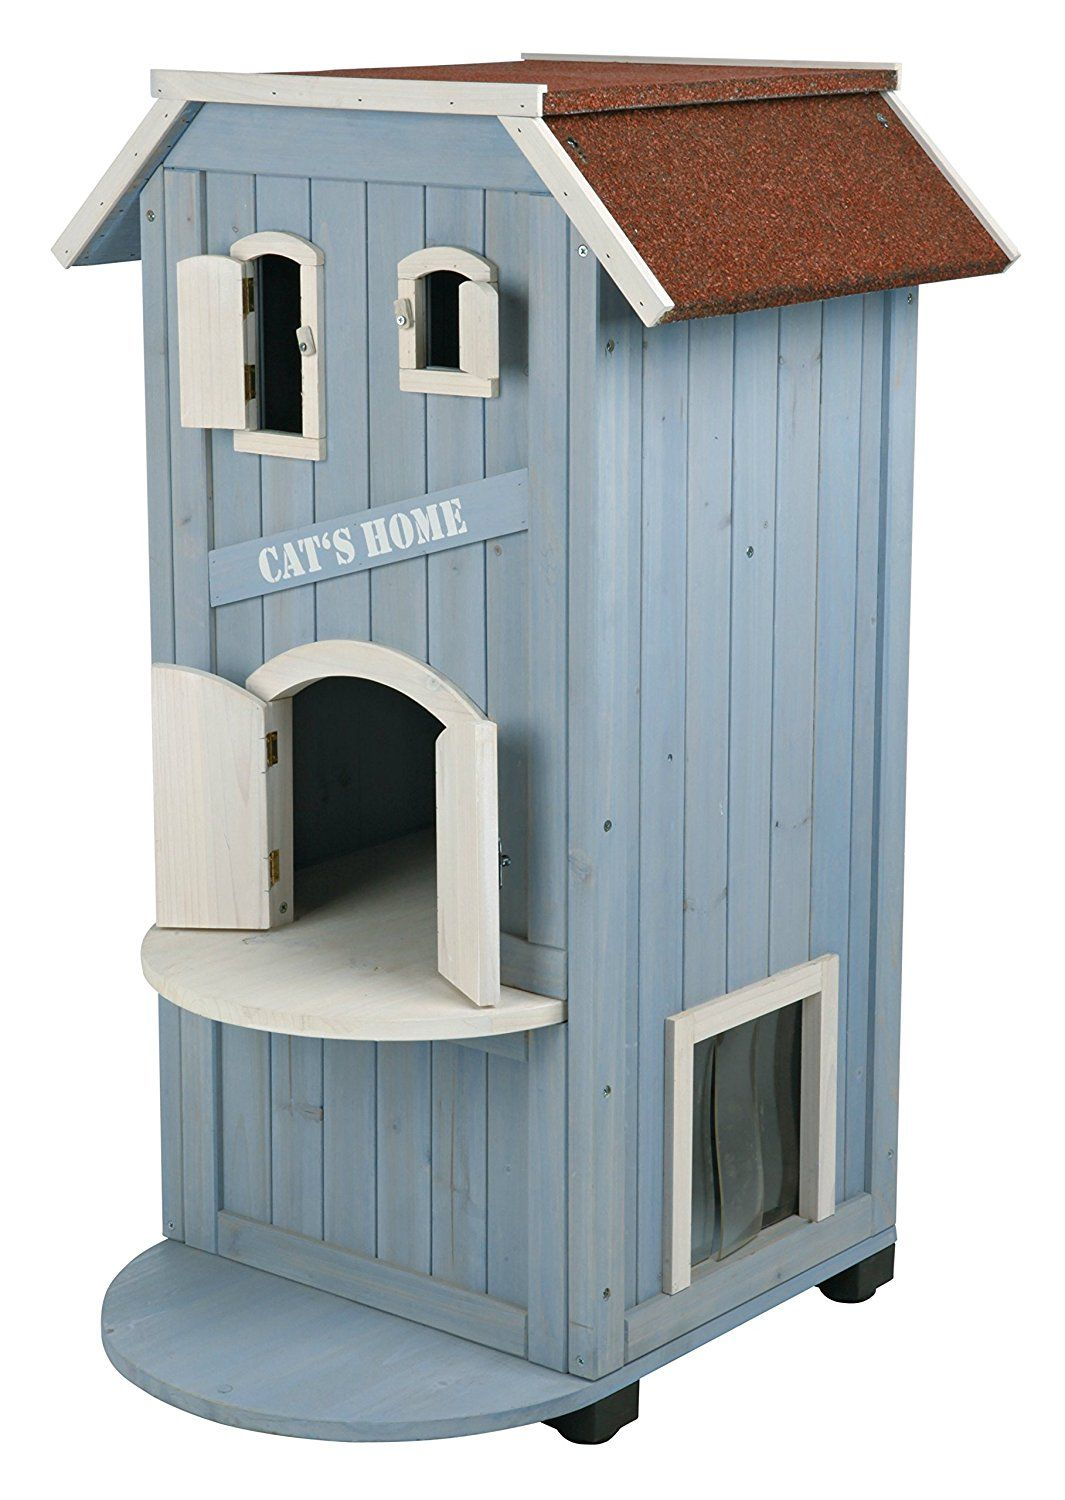 Large Cats Home Luxury Cat Shelter Outdoor Indoor Kitty Condo Pet Kit Playhouse To View Further Visit Now C Outdoor Cat House Wooden Cat House Cat House